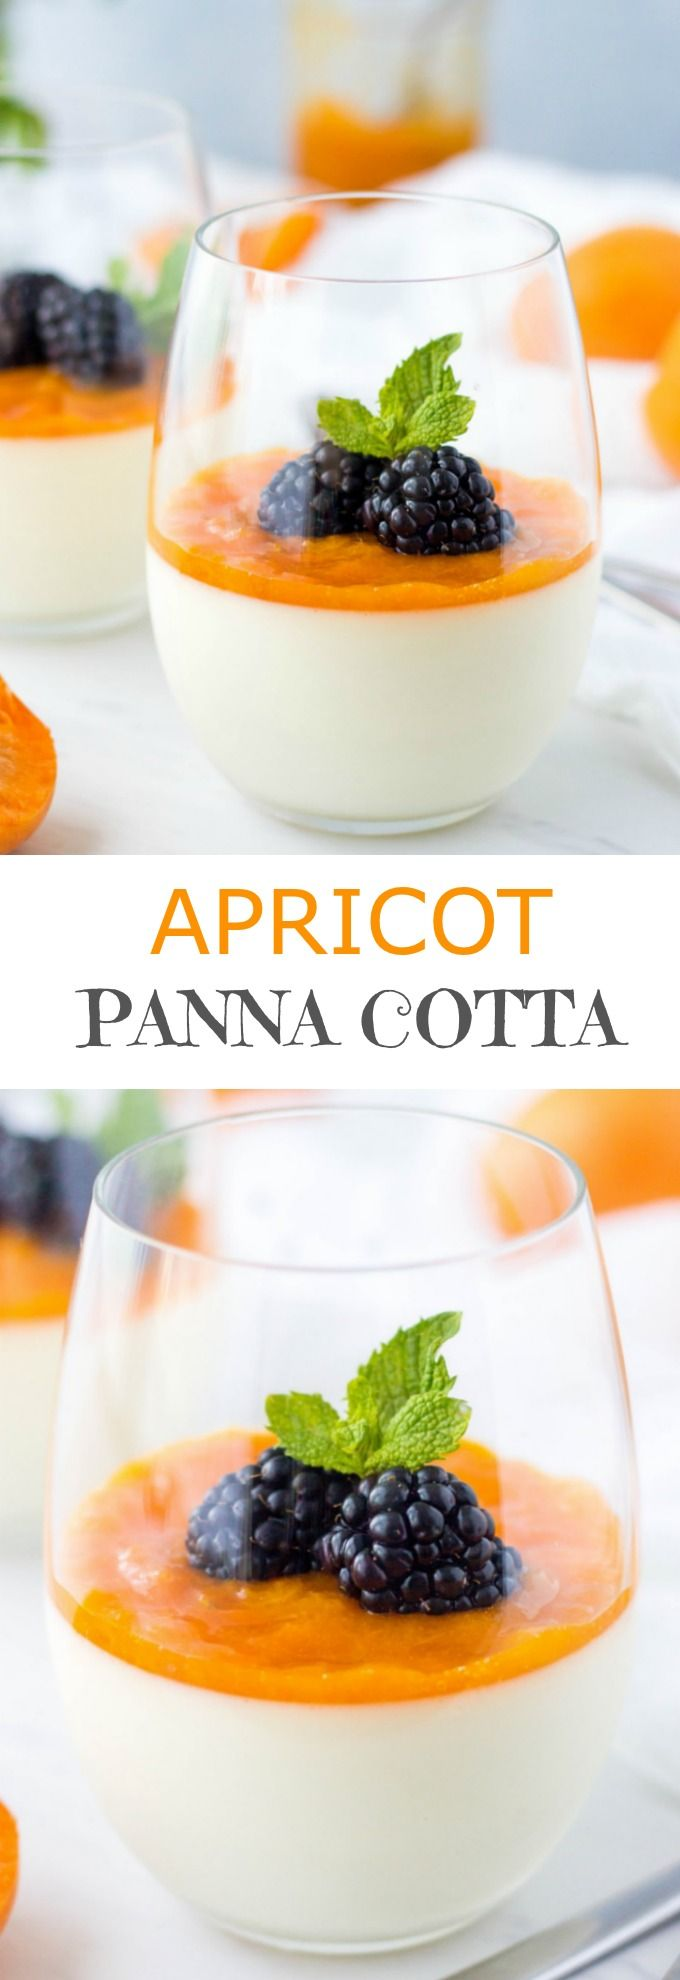 Classic Italian dessert with a French twist. This mouthwatering Apricot Panna Cotta has a silky smooth texture and some unexpected flavor.